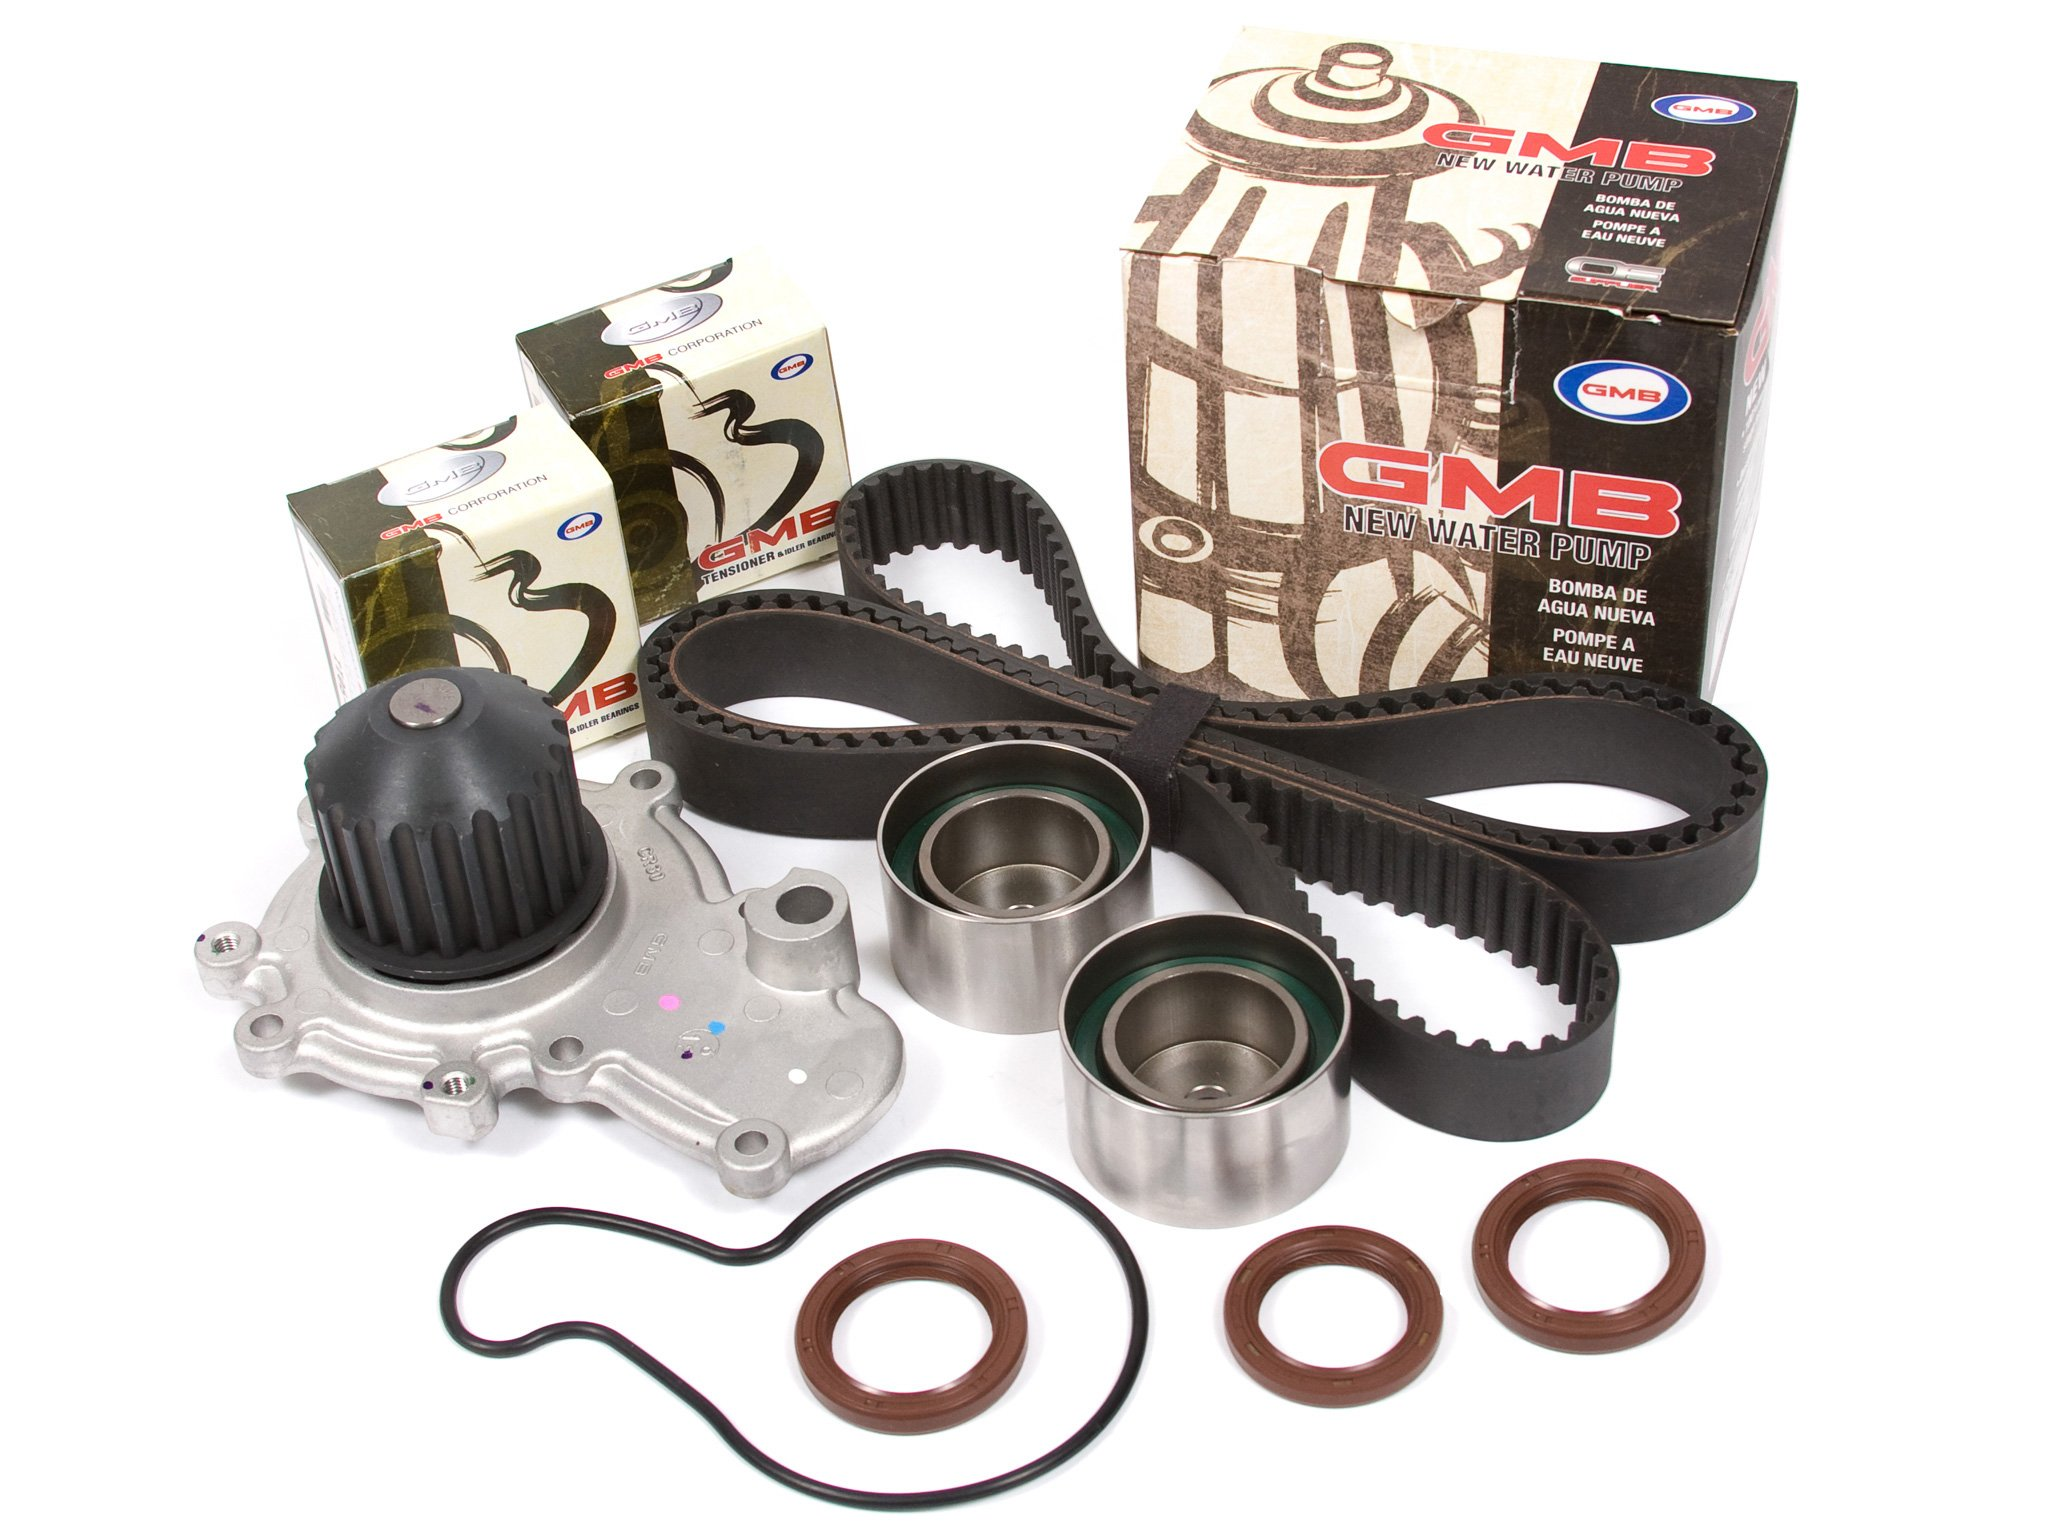 Evergreen TBK246WP Compatible With 95-99 Chysler Dodge Eagle Mitsubishi Plymouth 2.0 DOHC 420A Timing Belt Kit GMB Water Pump